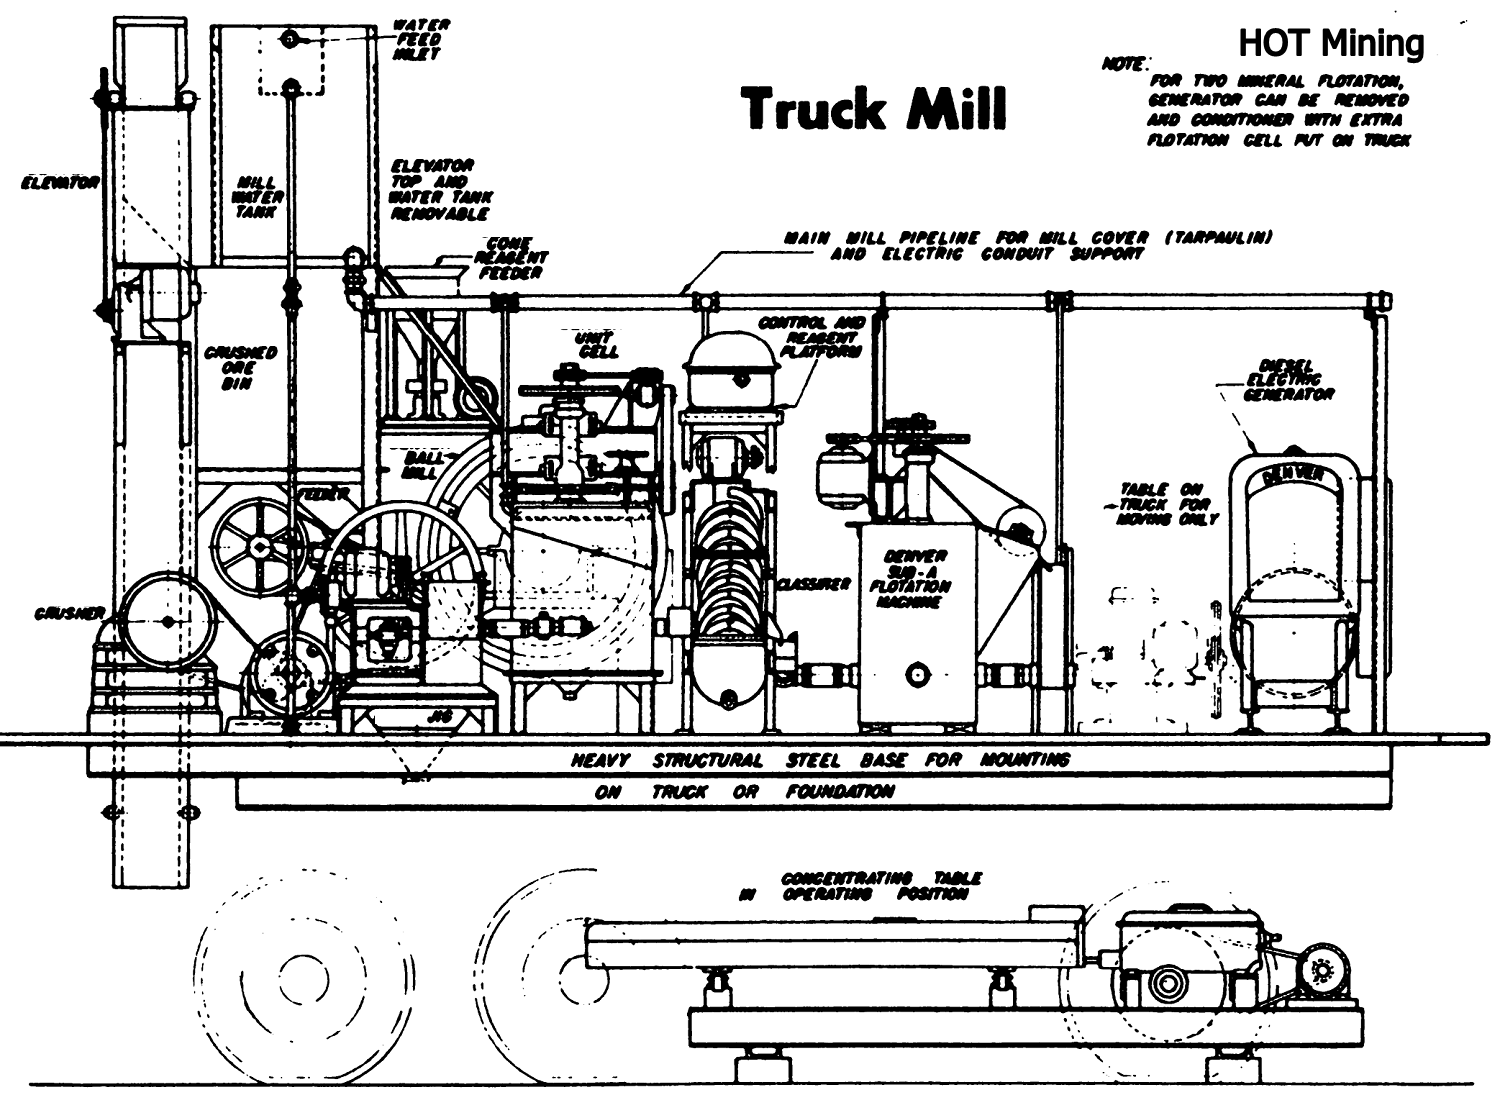 Mobile-Process-Plant-in-Pickup-Truck-1